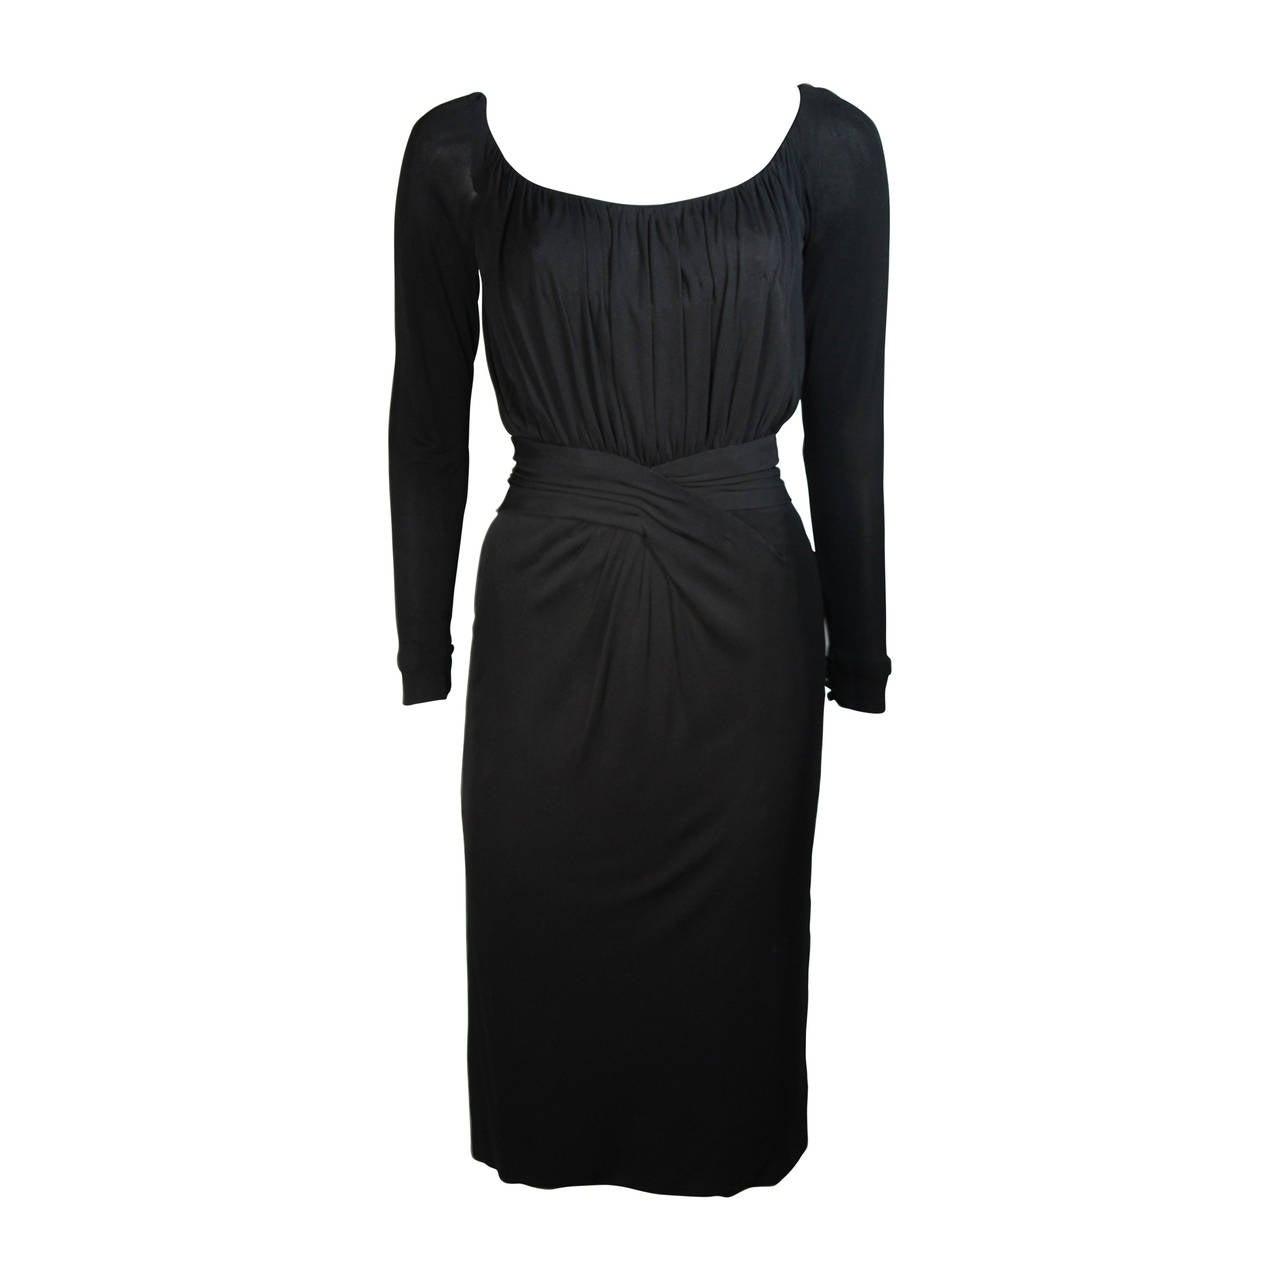 Ceil Chapman Black Silk Crepe Cocktail Dress with Gathers Size 4-6 1